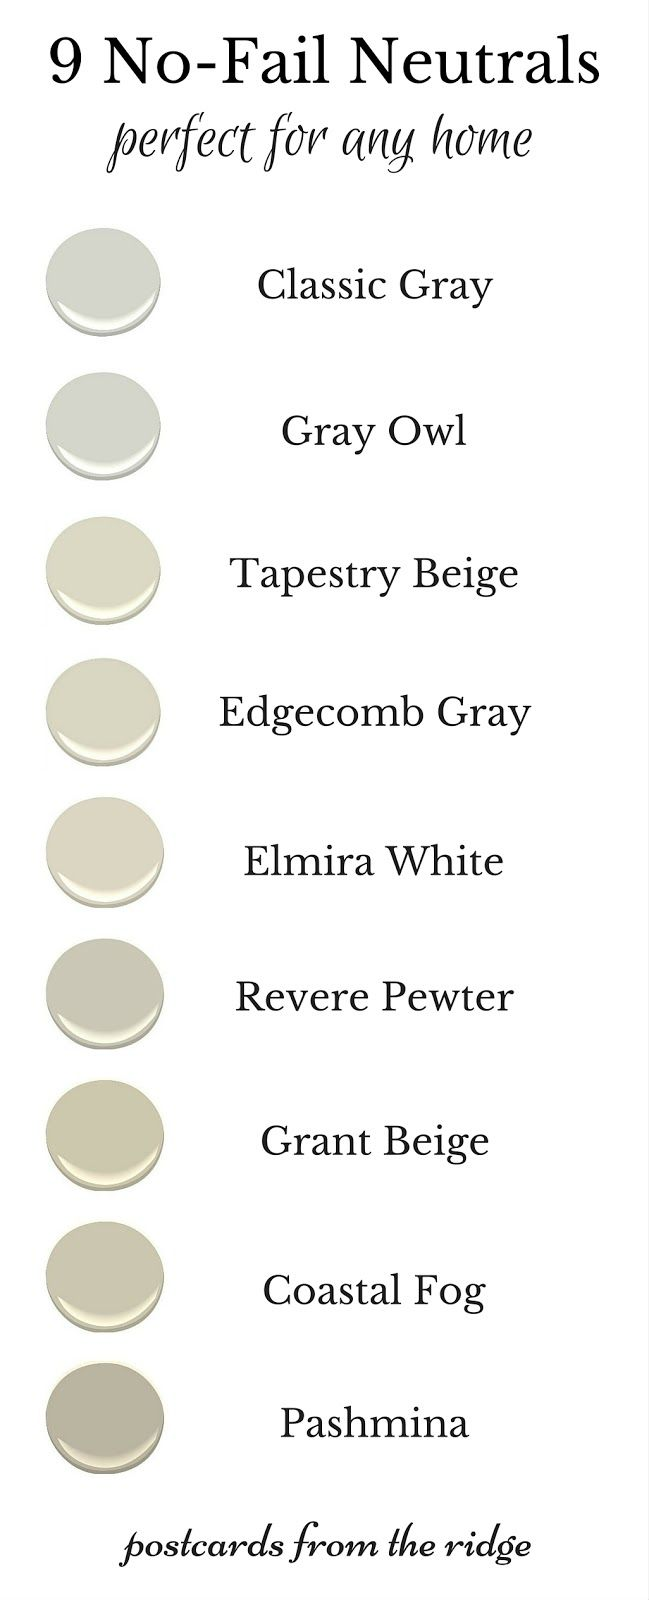 What Are Neutral Colors 37 best revere pewter images on pinterest | wall colors, interior